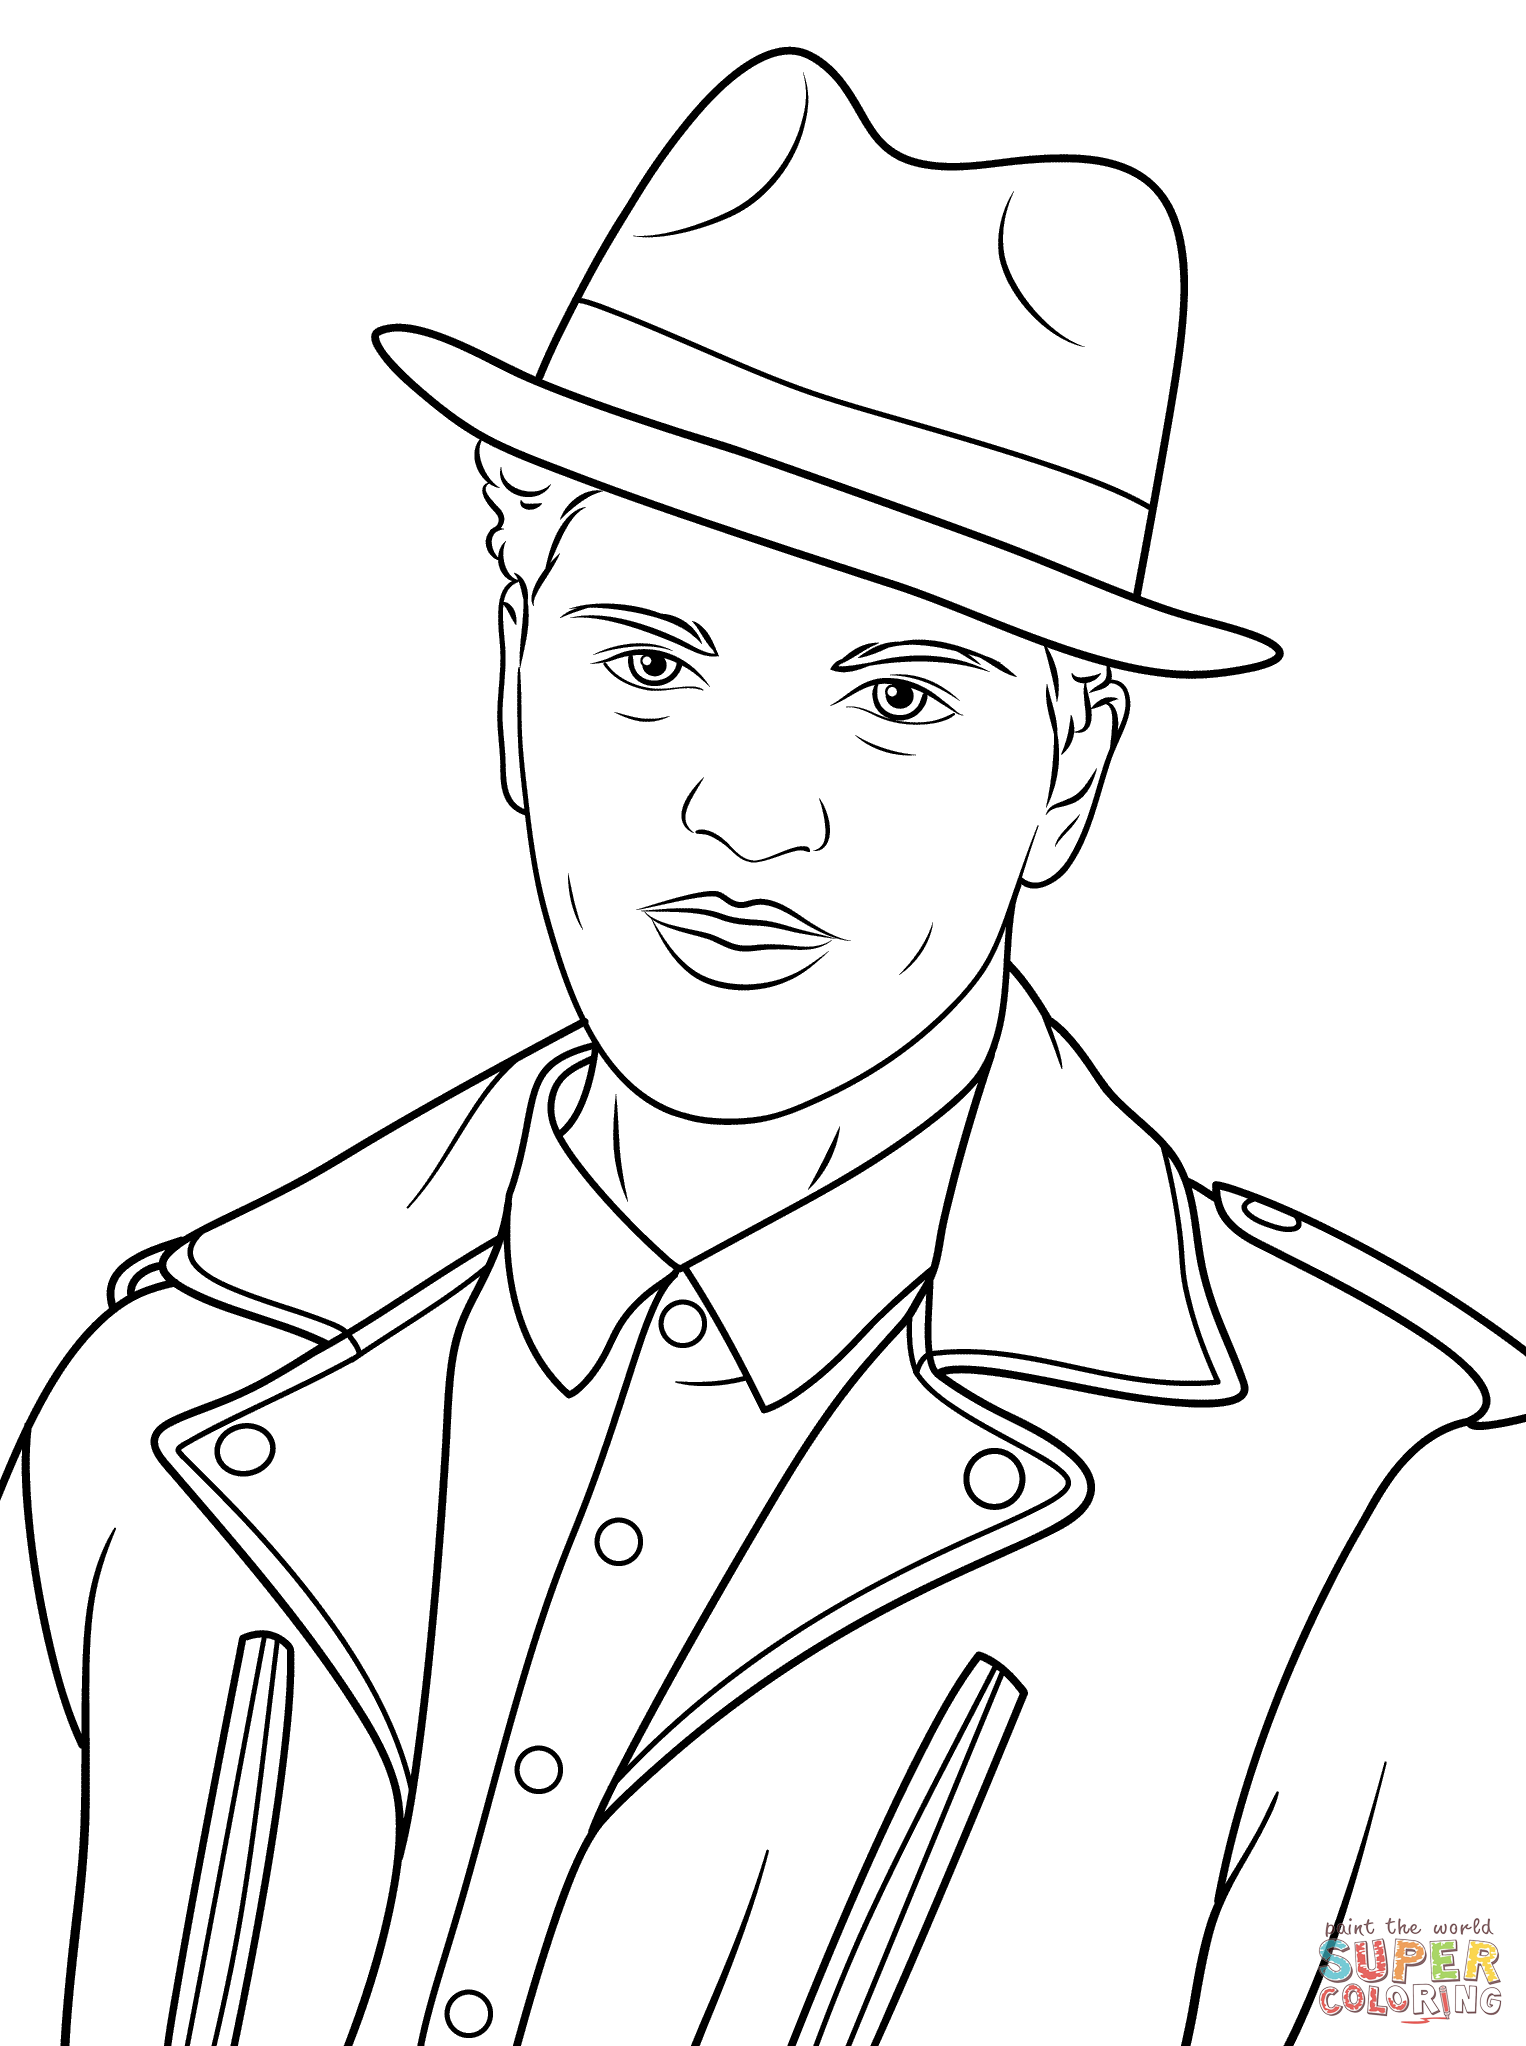 Bruno Mars coloring page | Free Printable Coloring Pages